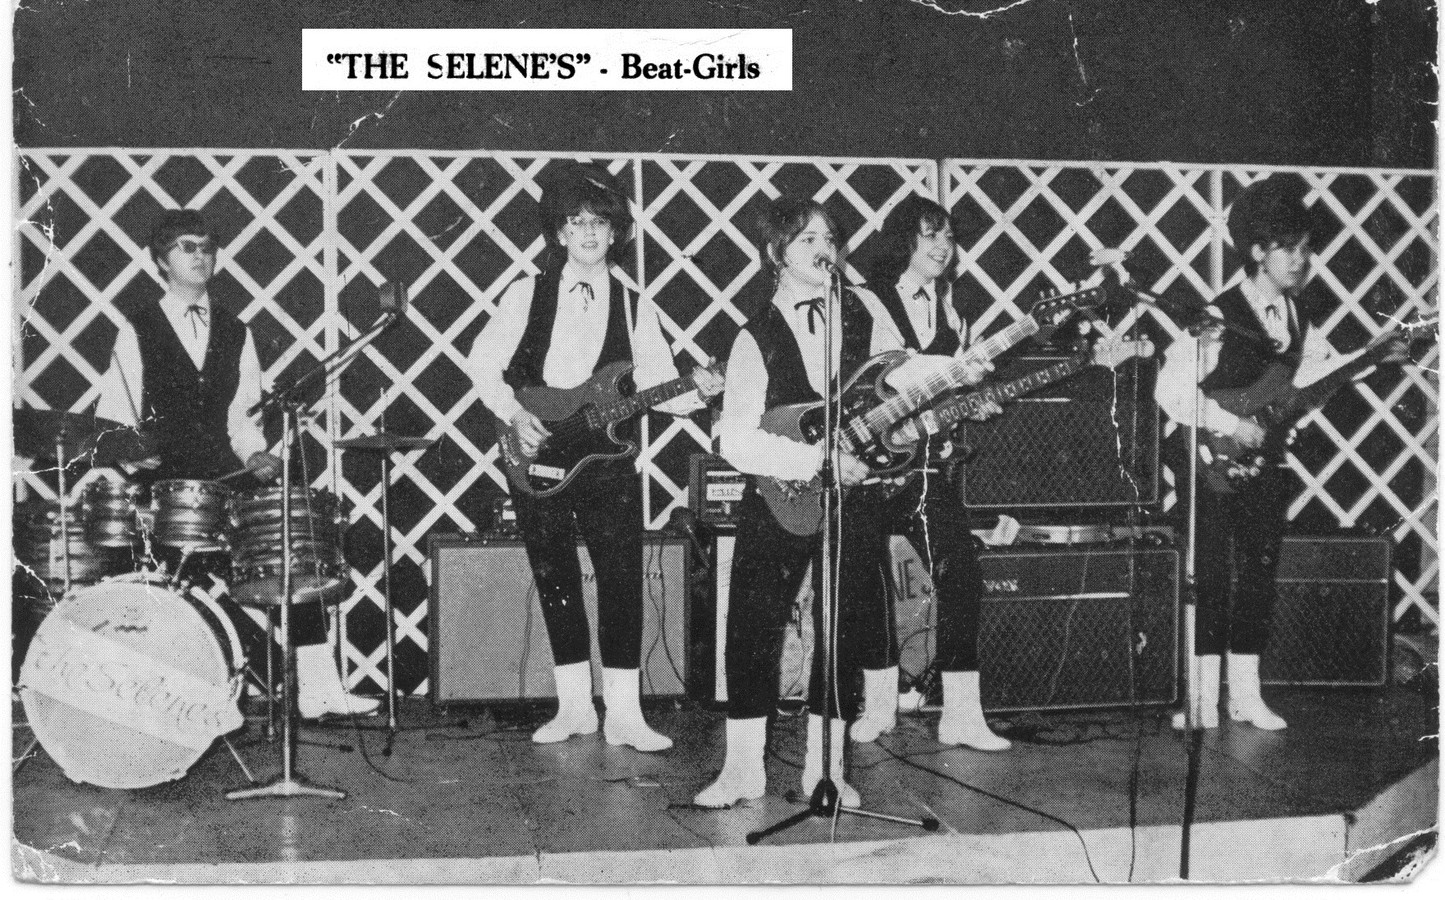 The Selene's in 1966